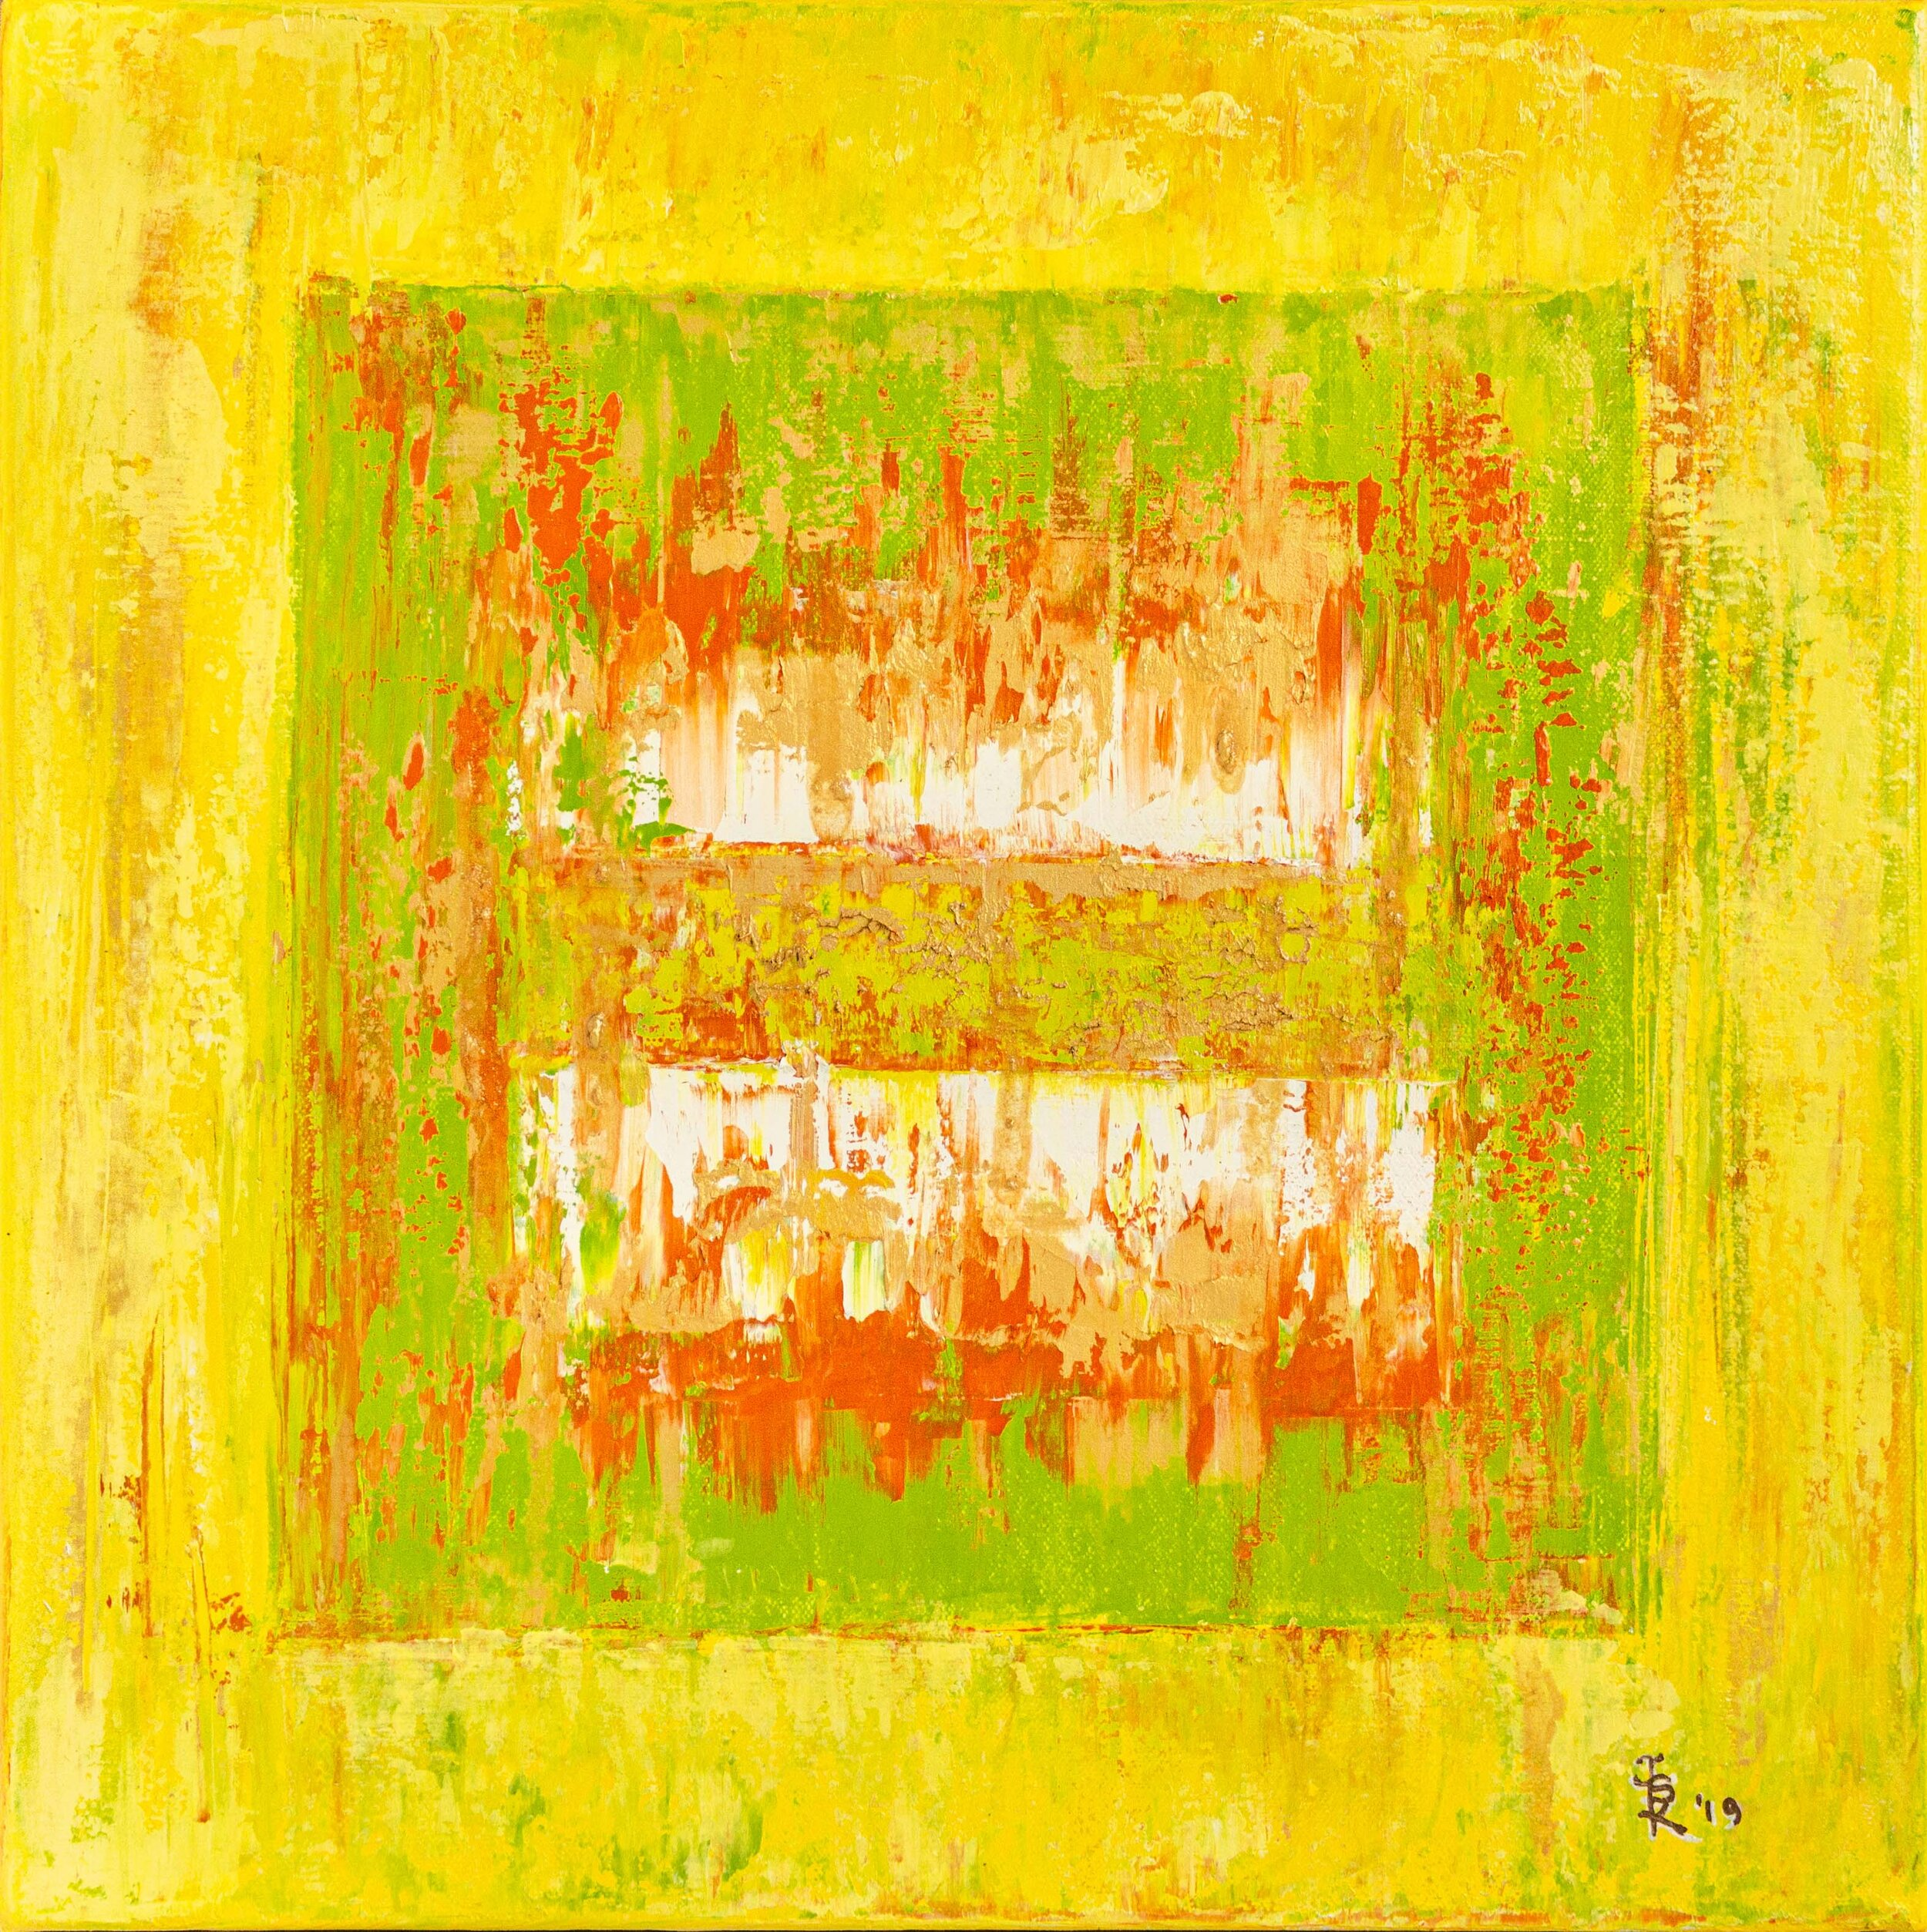 Ice Cube Small Yellow & Green, 2019